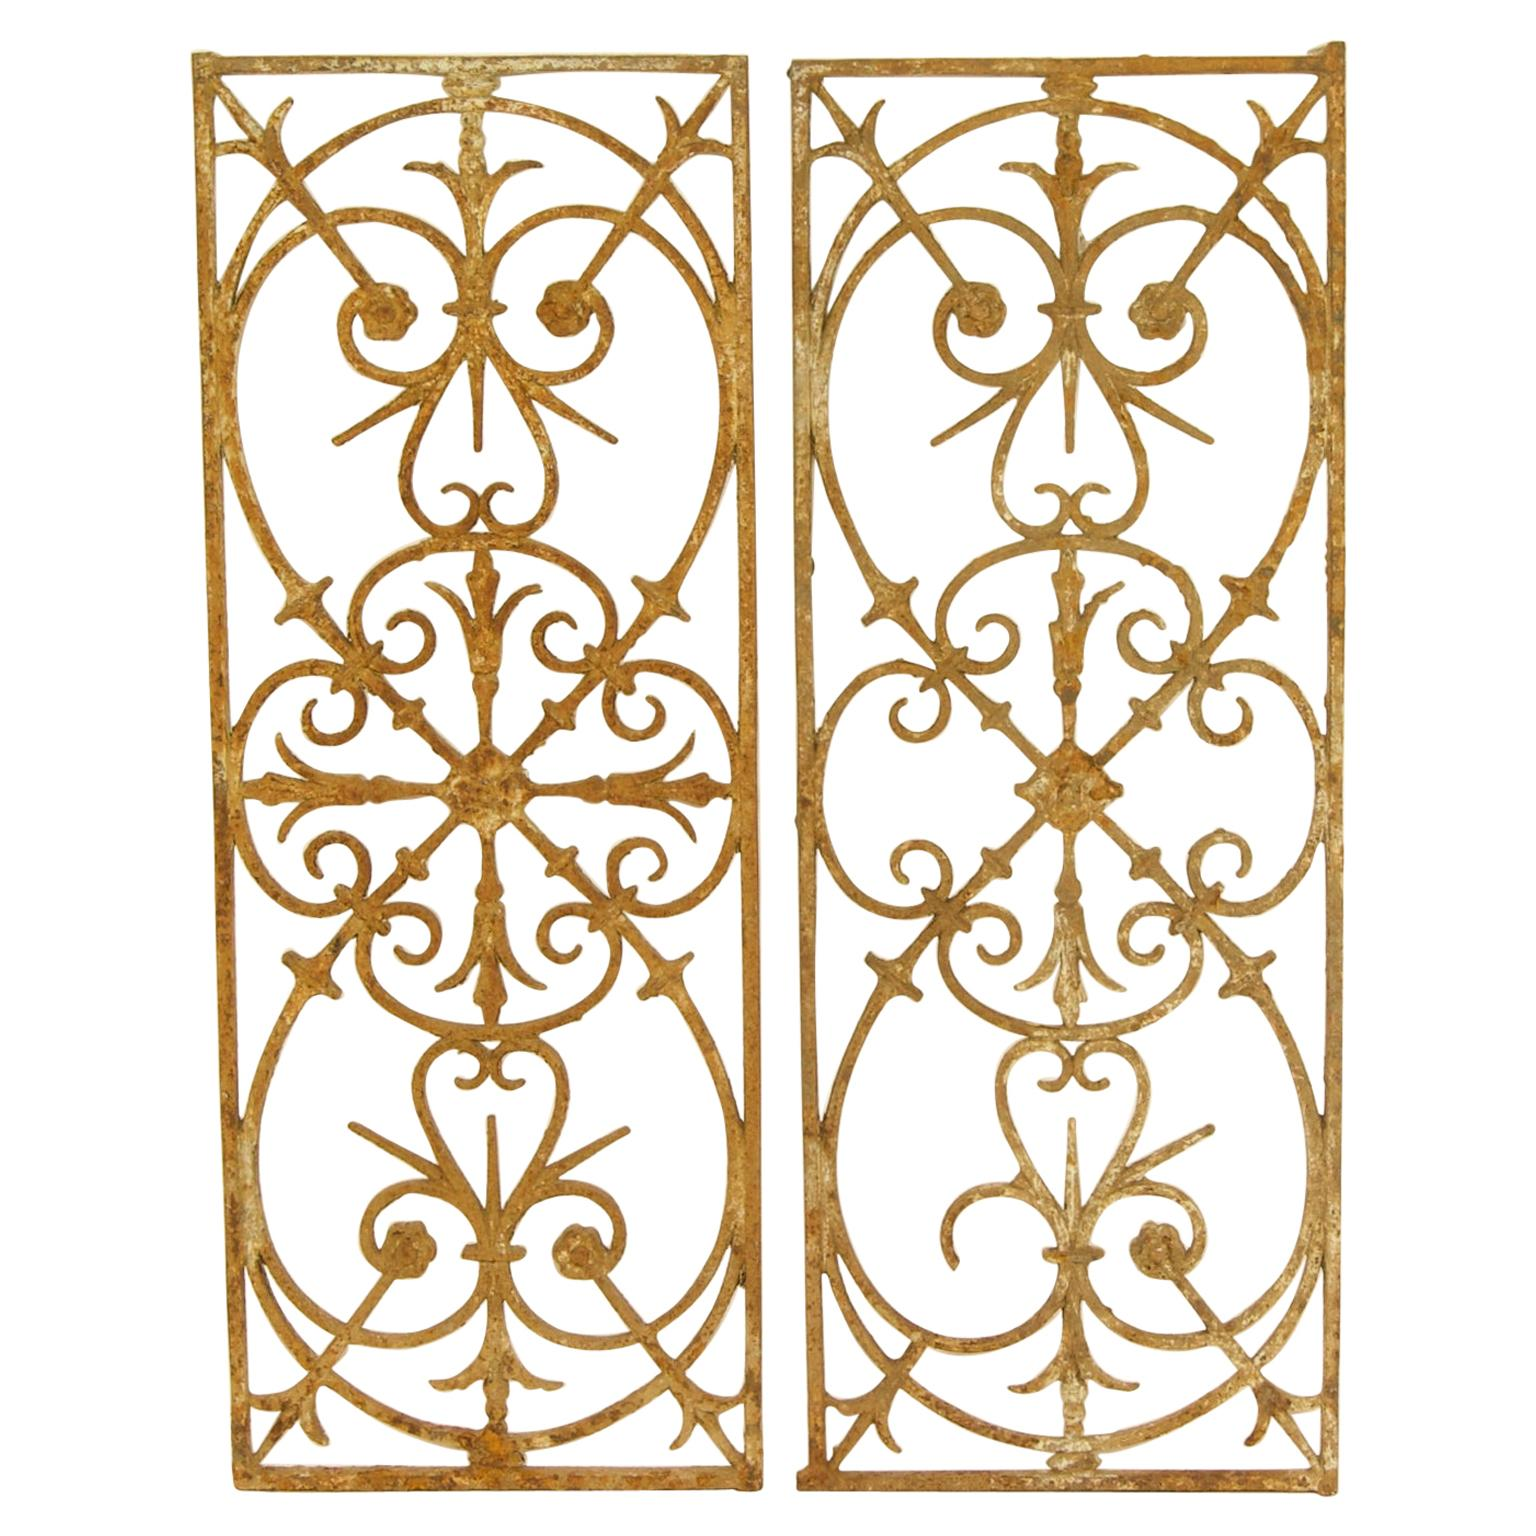 Pair of 18th Century Louis XVI Wrought Iron Fence Elements or Window Grills